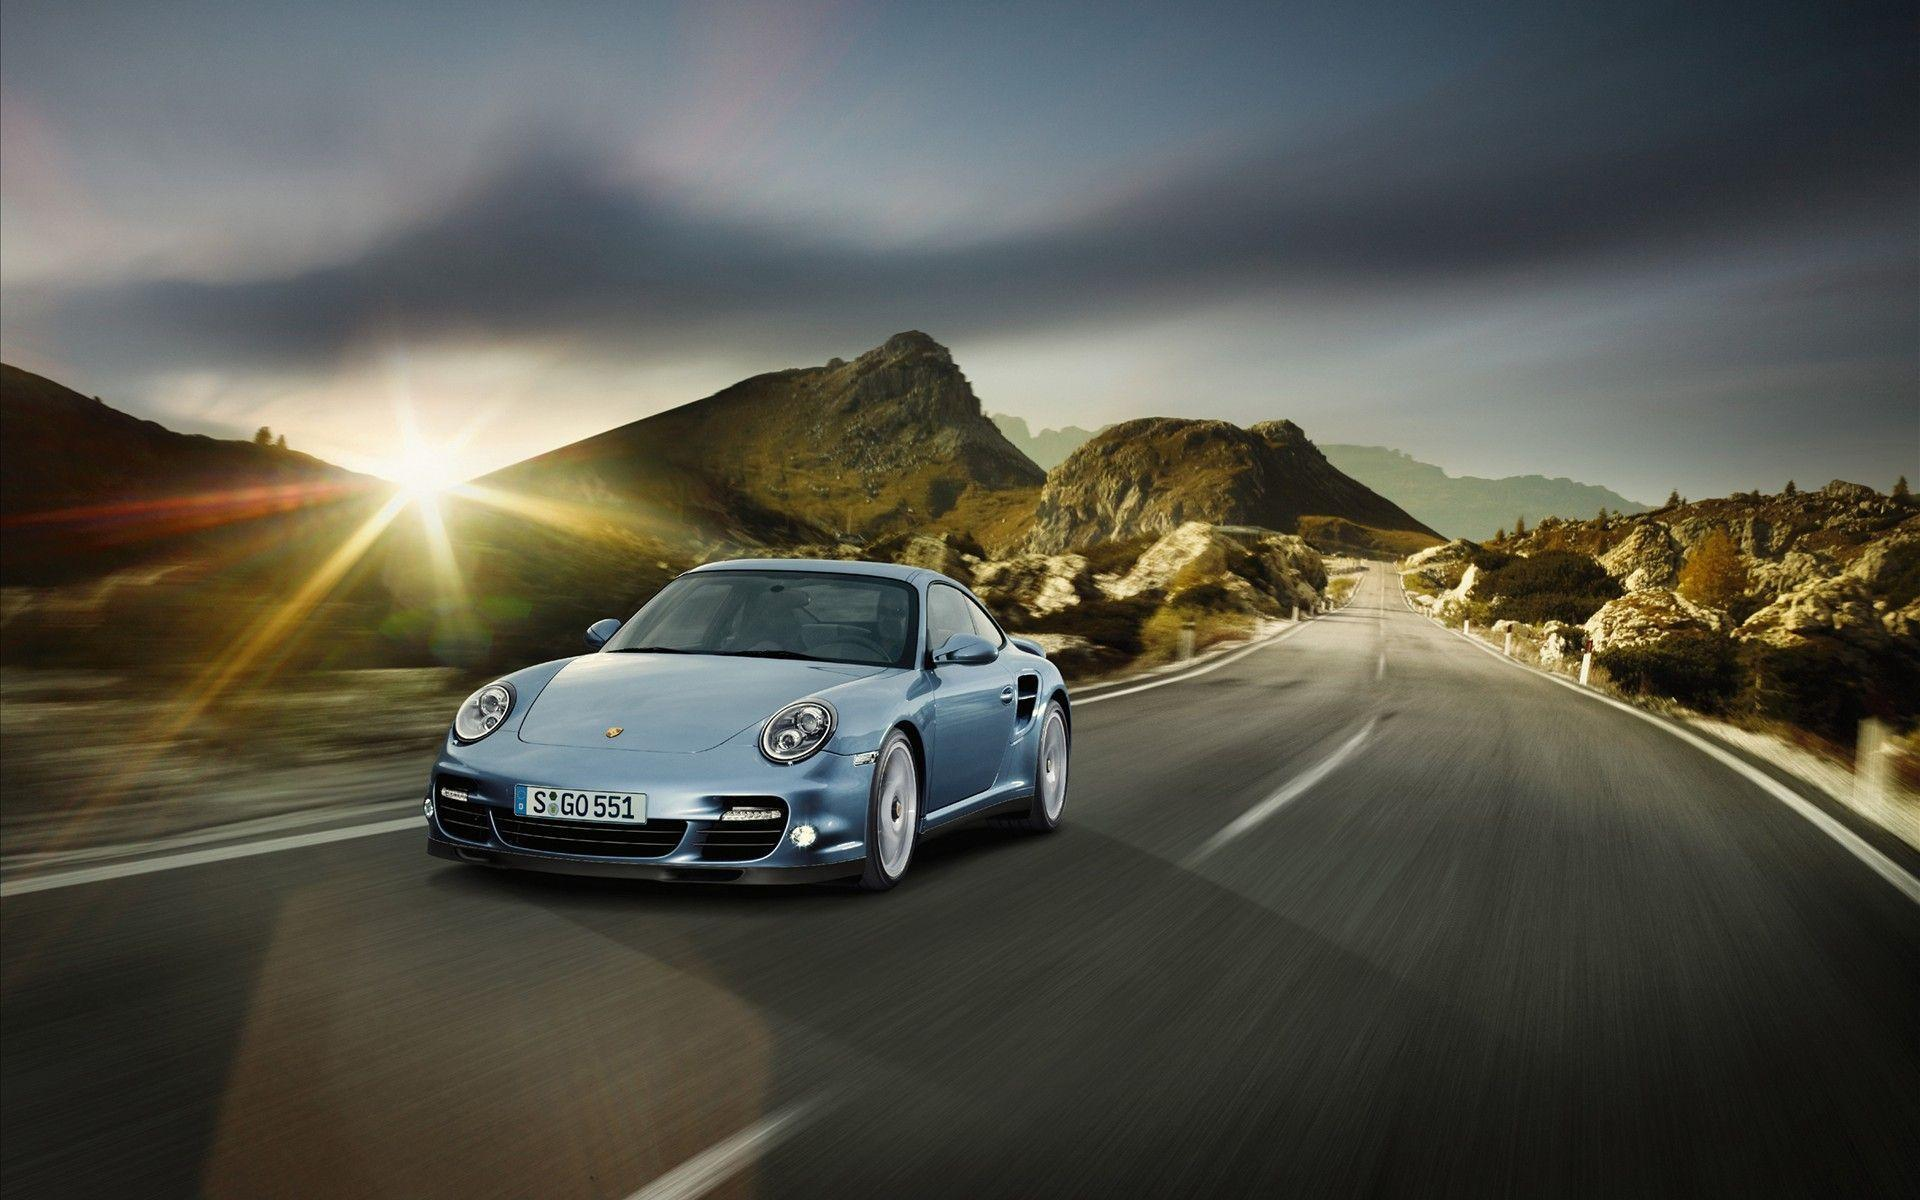 Porsche 911 Wallpapers - HD Wallpapers Inn